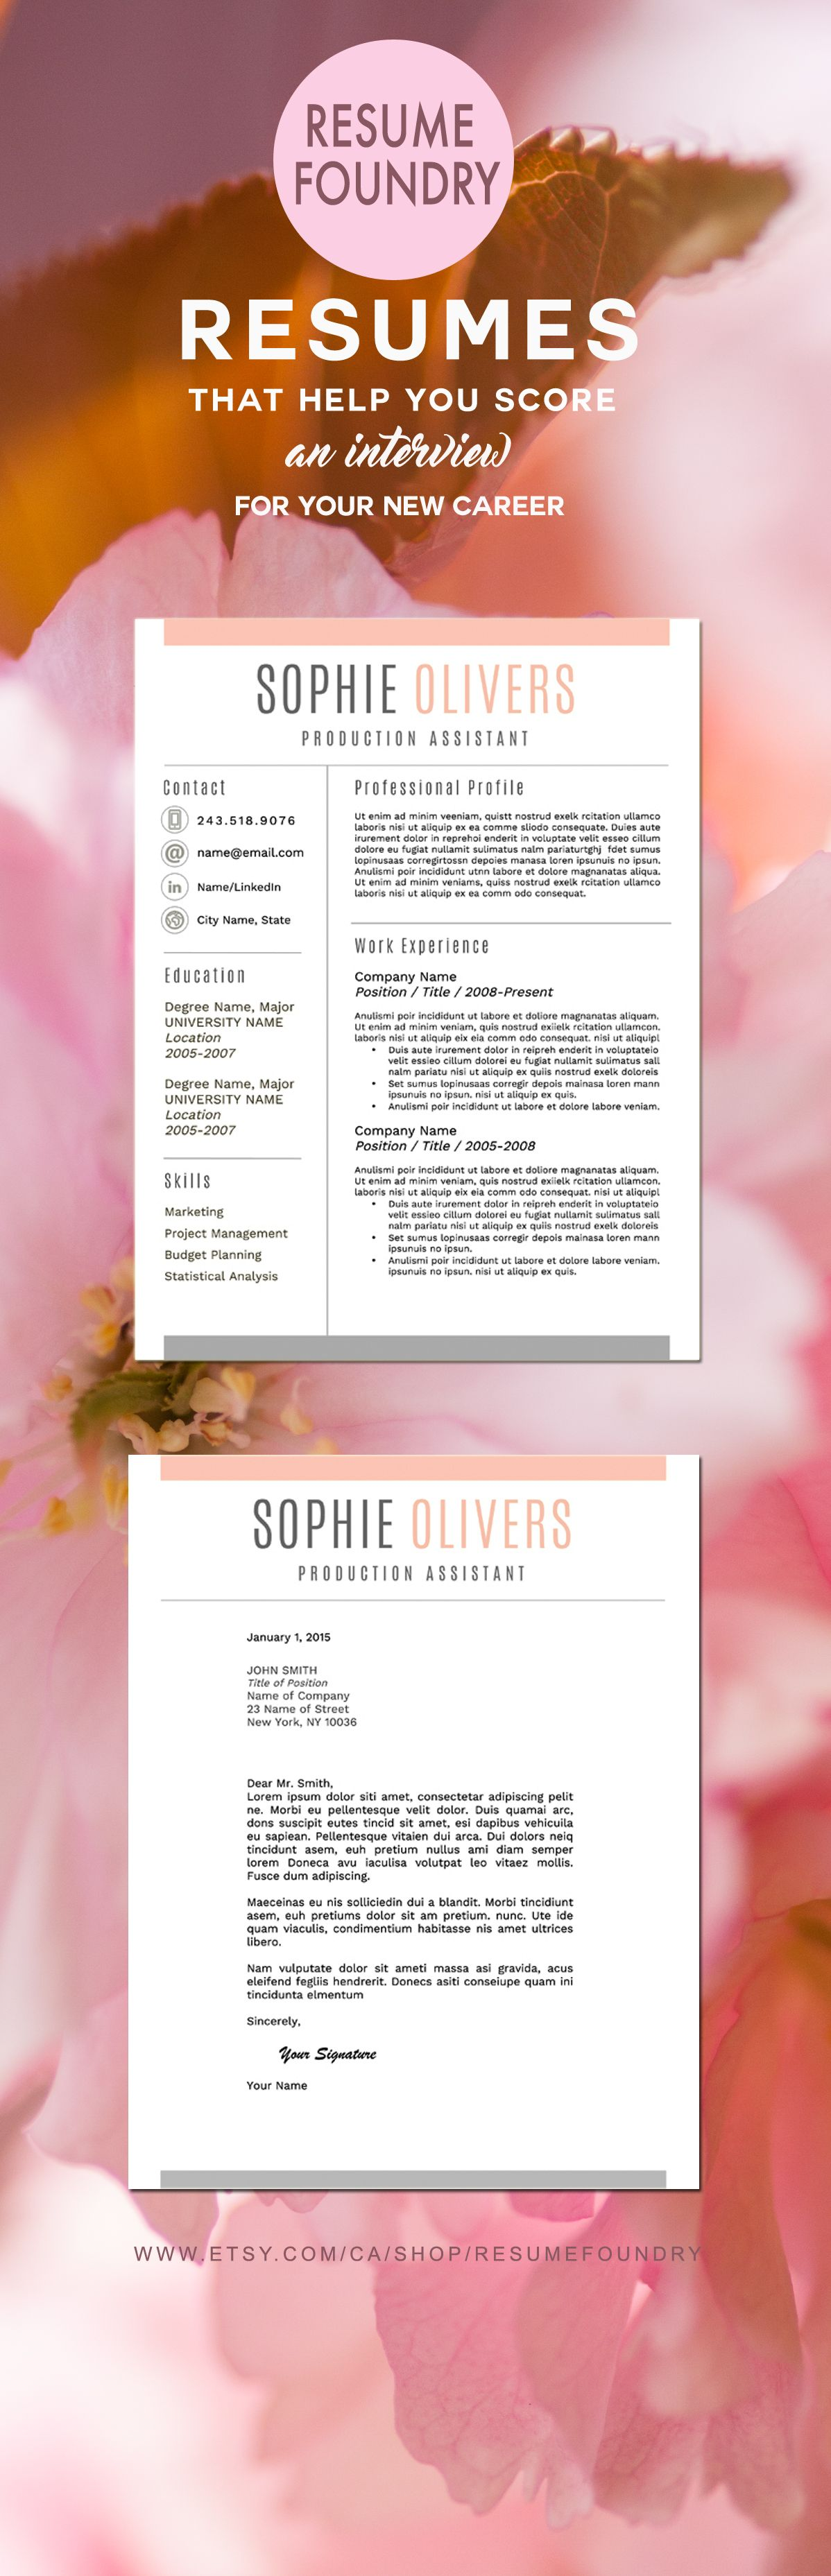 elegant resume template instant download for use with microsoft word resume foundry